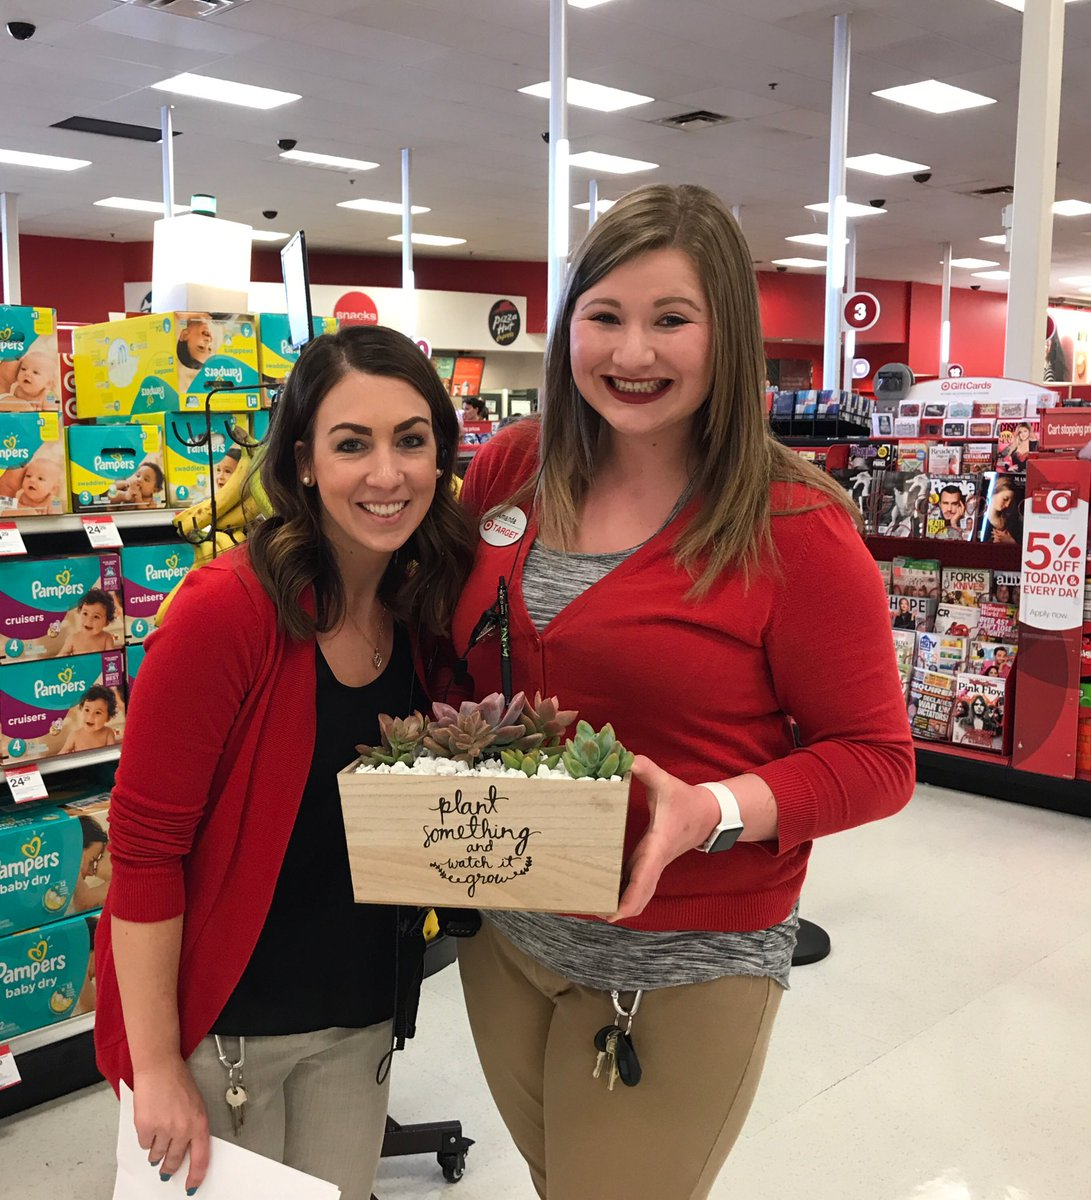 amanda flood amanda tgt twitter we are so proud of everything you have accomplished d248 just gained another amazing etl mrsharsen tgtpic twitter com vhhrlsy2qd at target